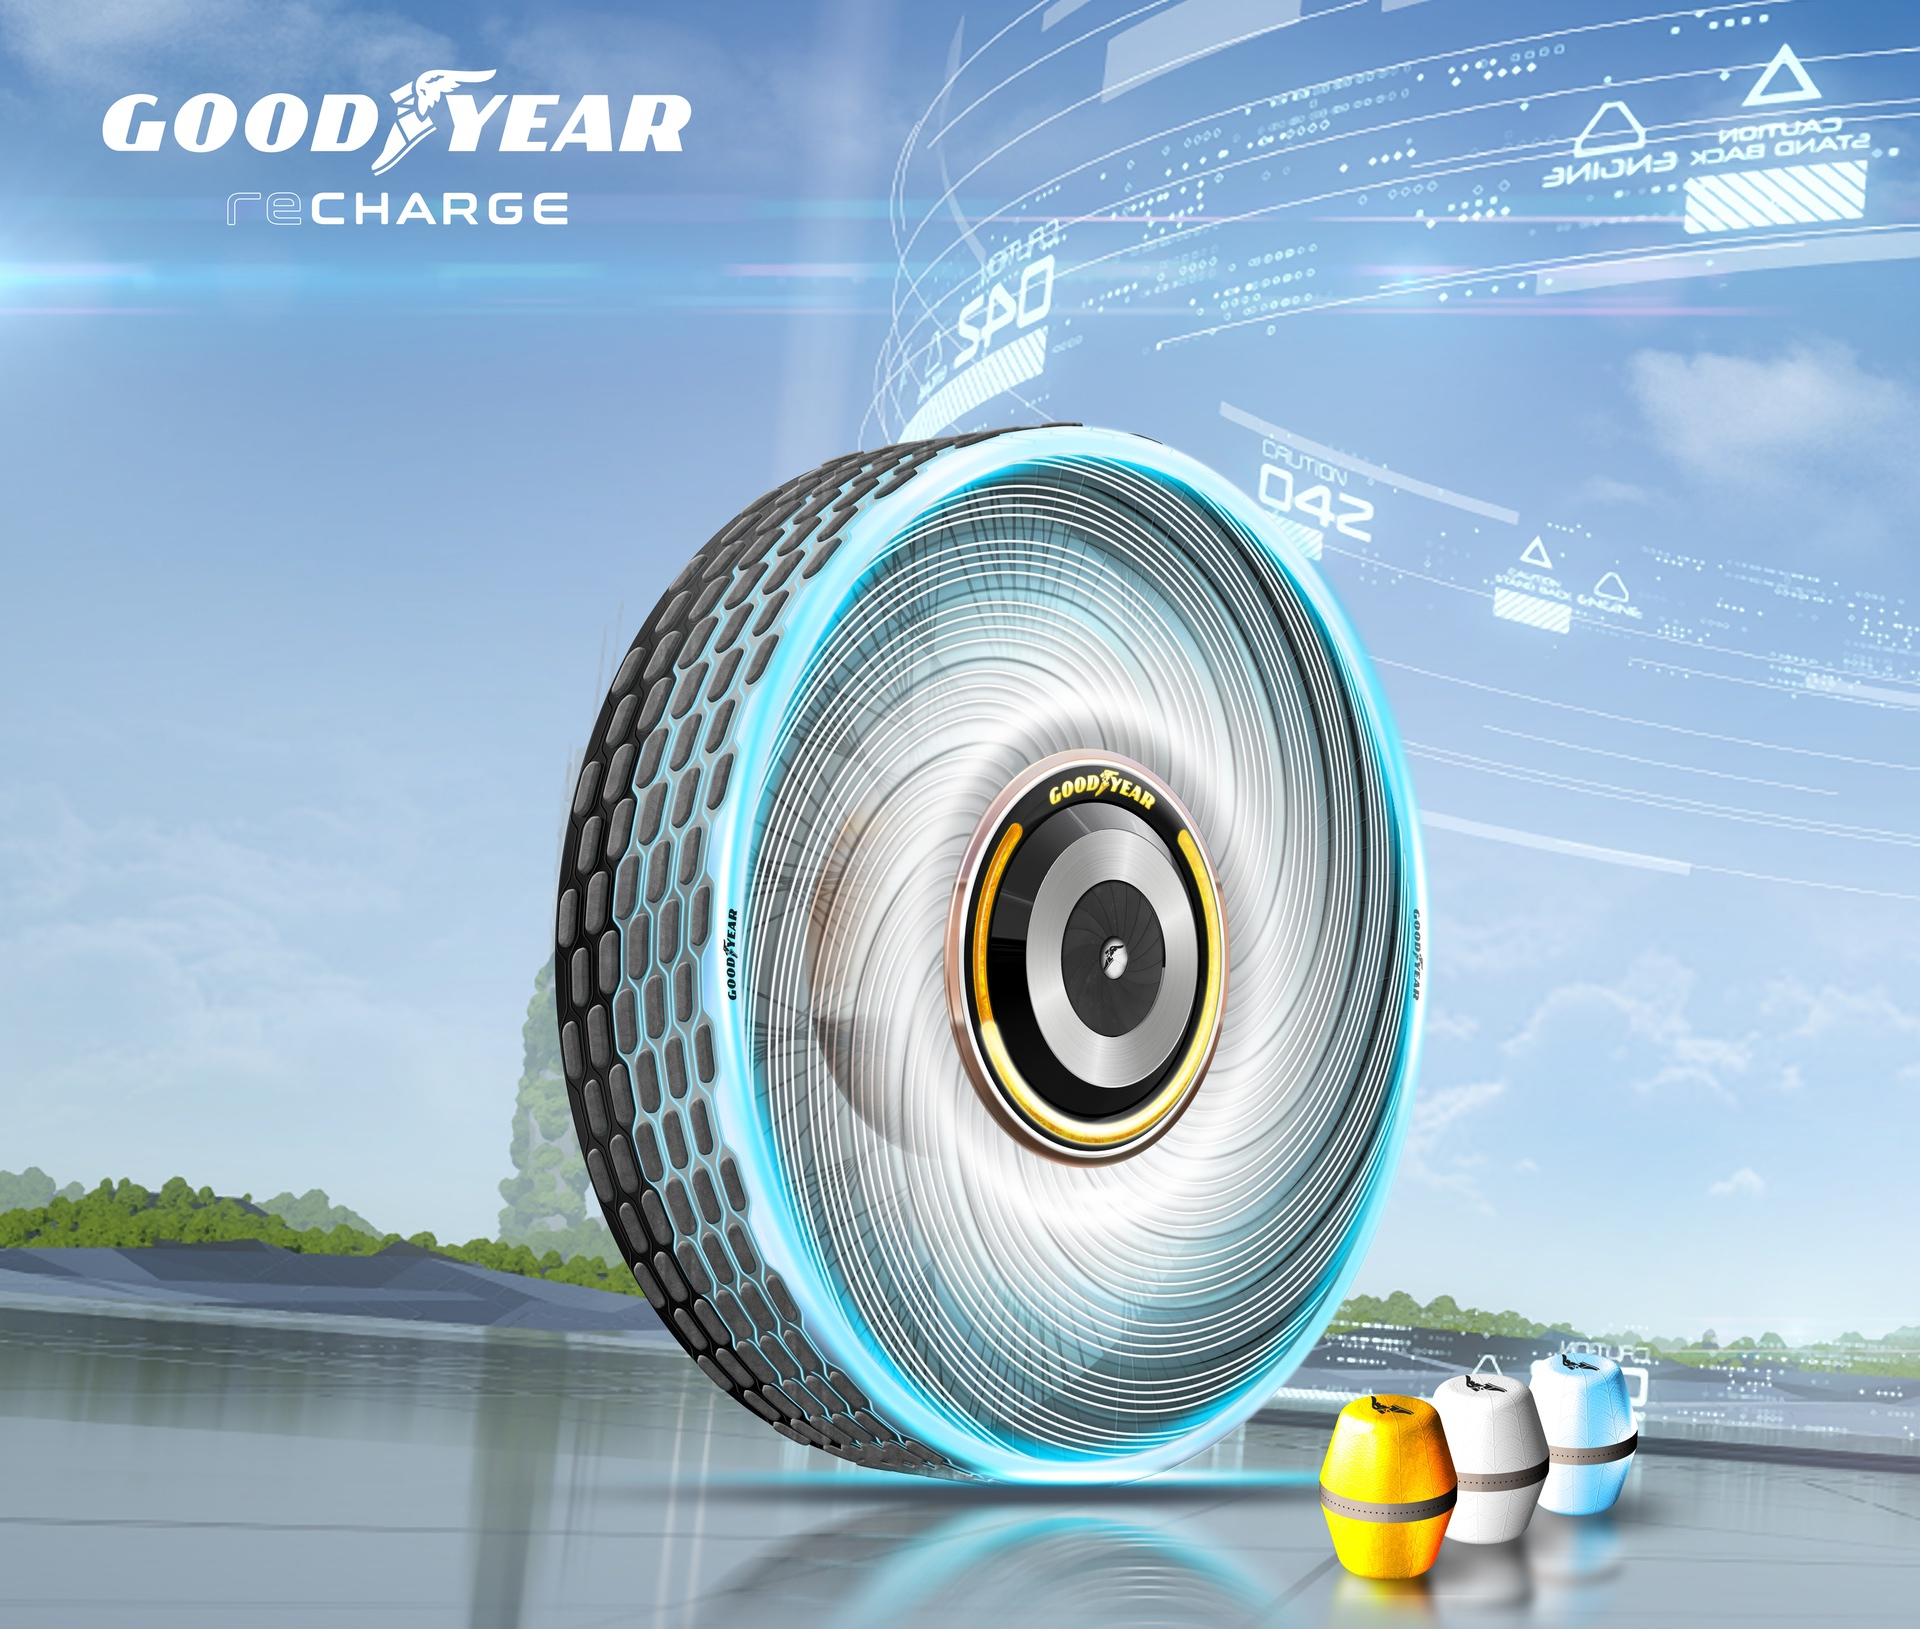 goodyear-recharge-threequarter-background